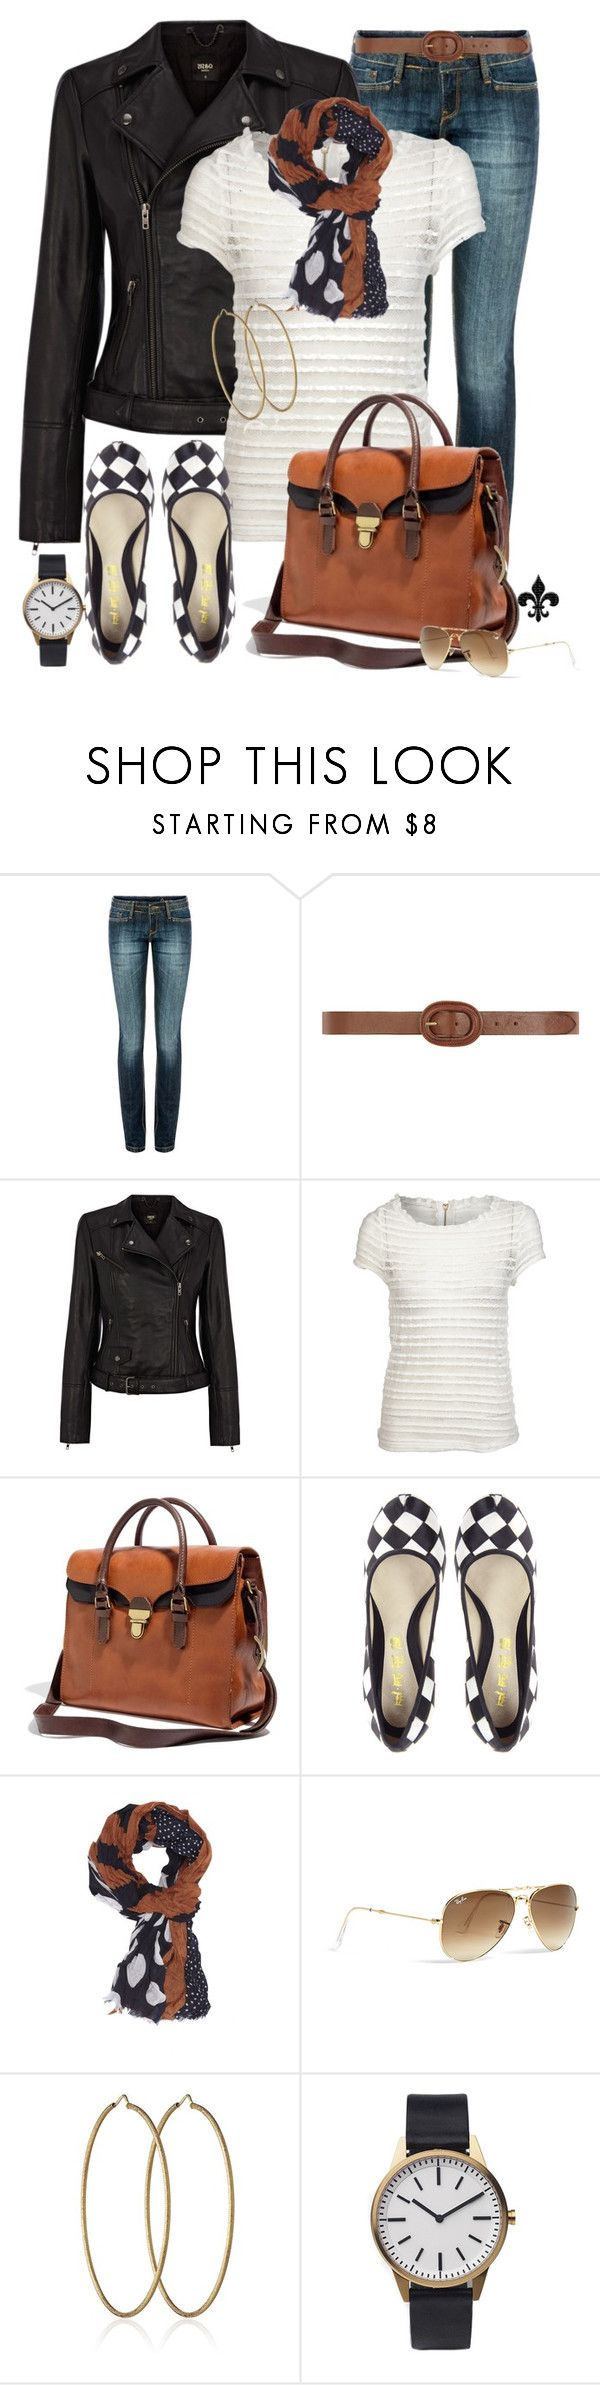 """""""FWF: Checkers and Dots"""" by hatsgaloore ❤ liked on Polyvore featuring MANGO, Dorothy Perkins, Oasis, Glamorous, Madewell, L.A.M.B., Ray-Ban, Carolina Bucci and Uniform Wares"""